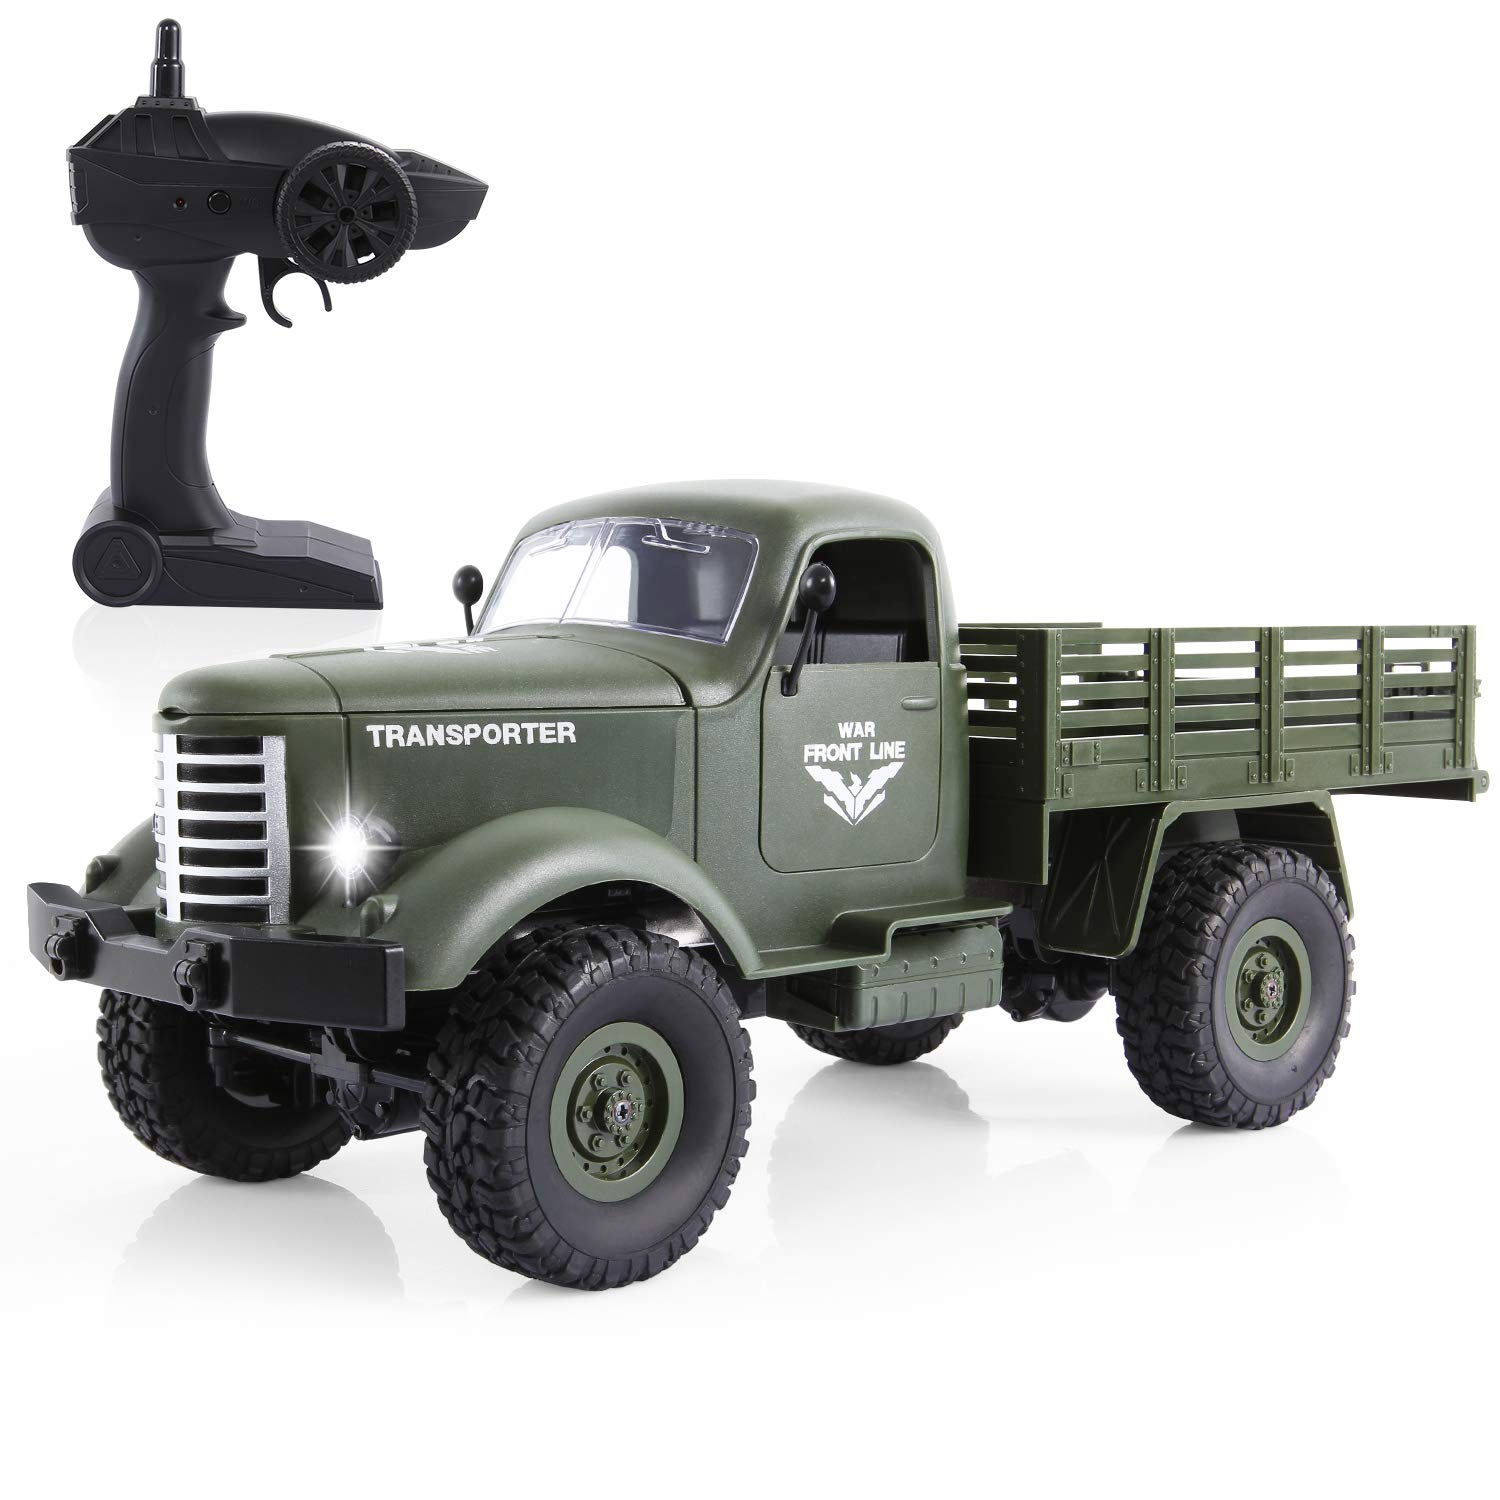 RC Military Truck, 1:16 4WD Off-Road Crawler Army Car, 2.4G Remote Control Hobby Toy RTR Car for Kids Adults Racing Training, Green